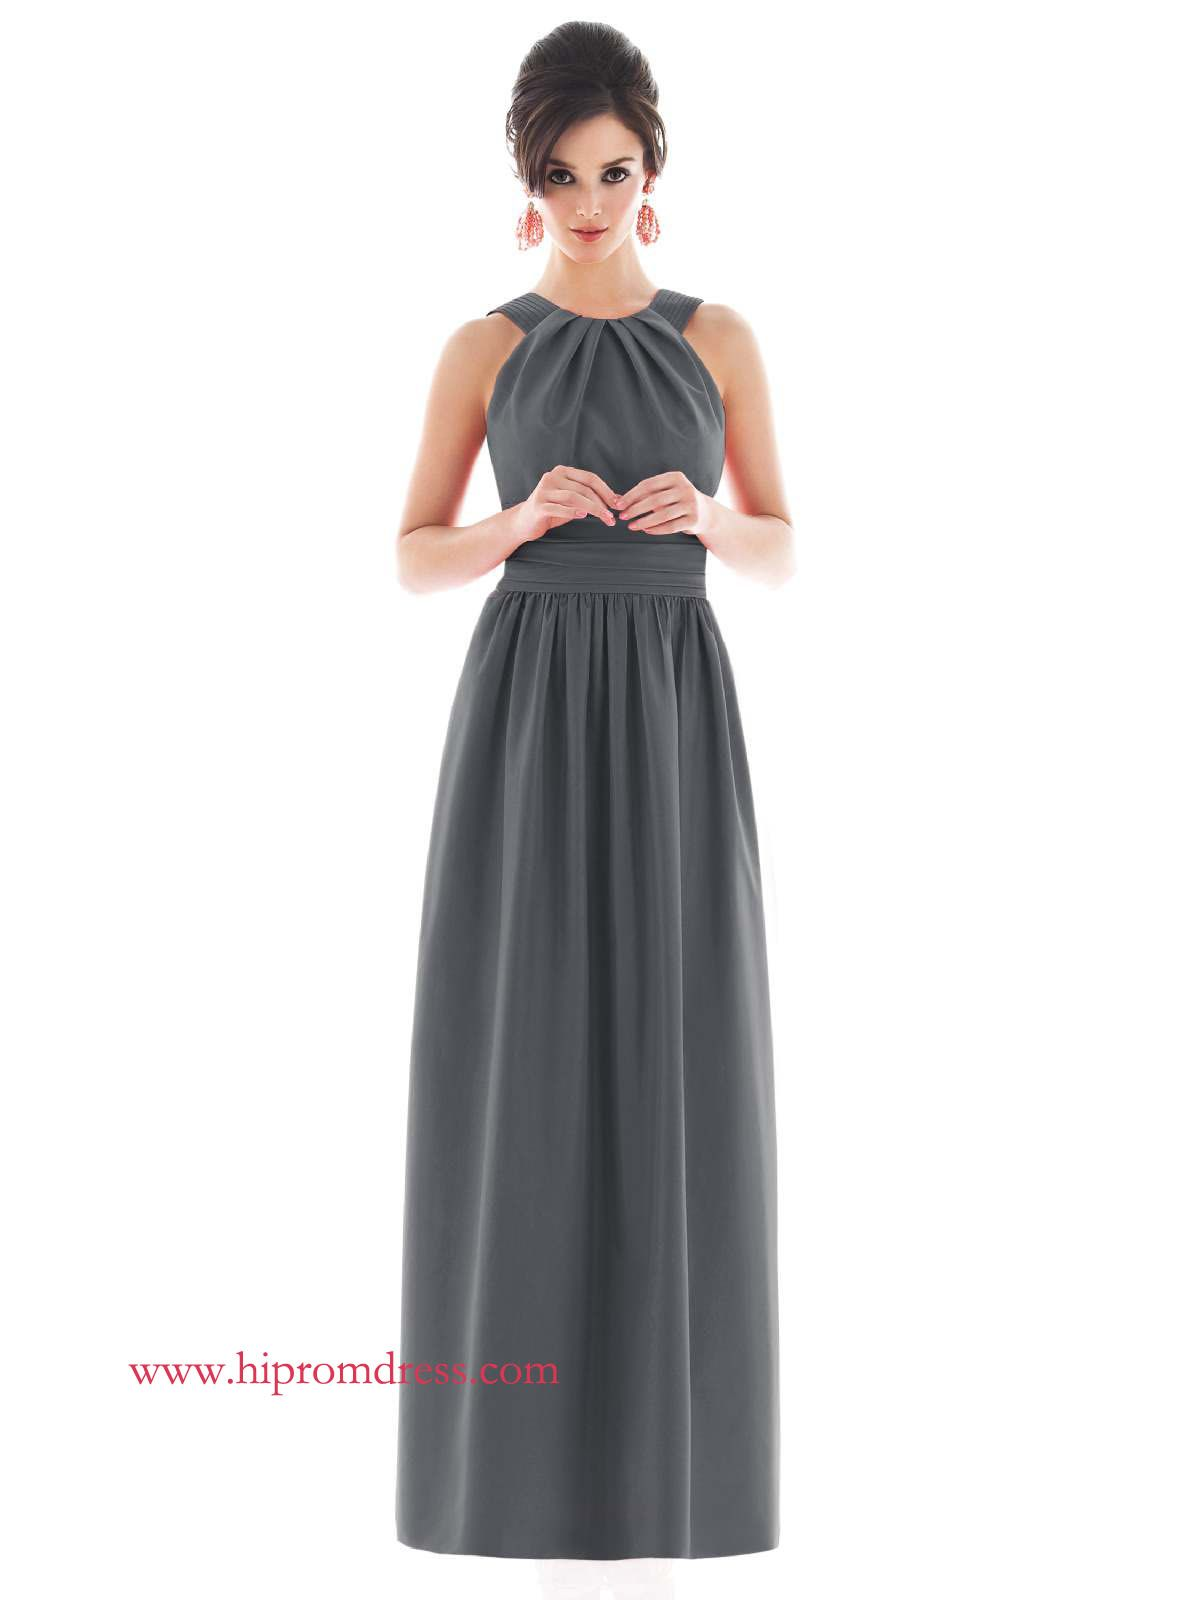 Pewter color dress for a wedding